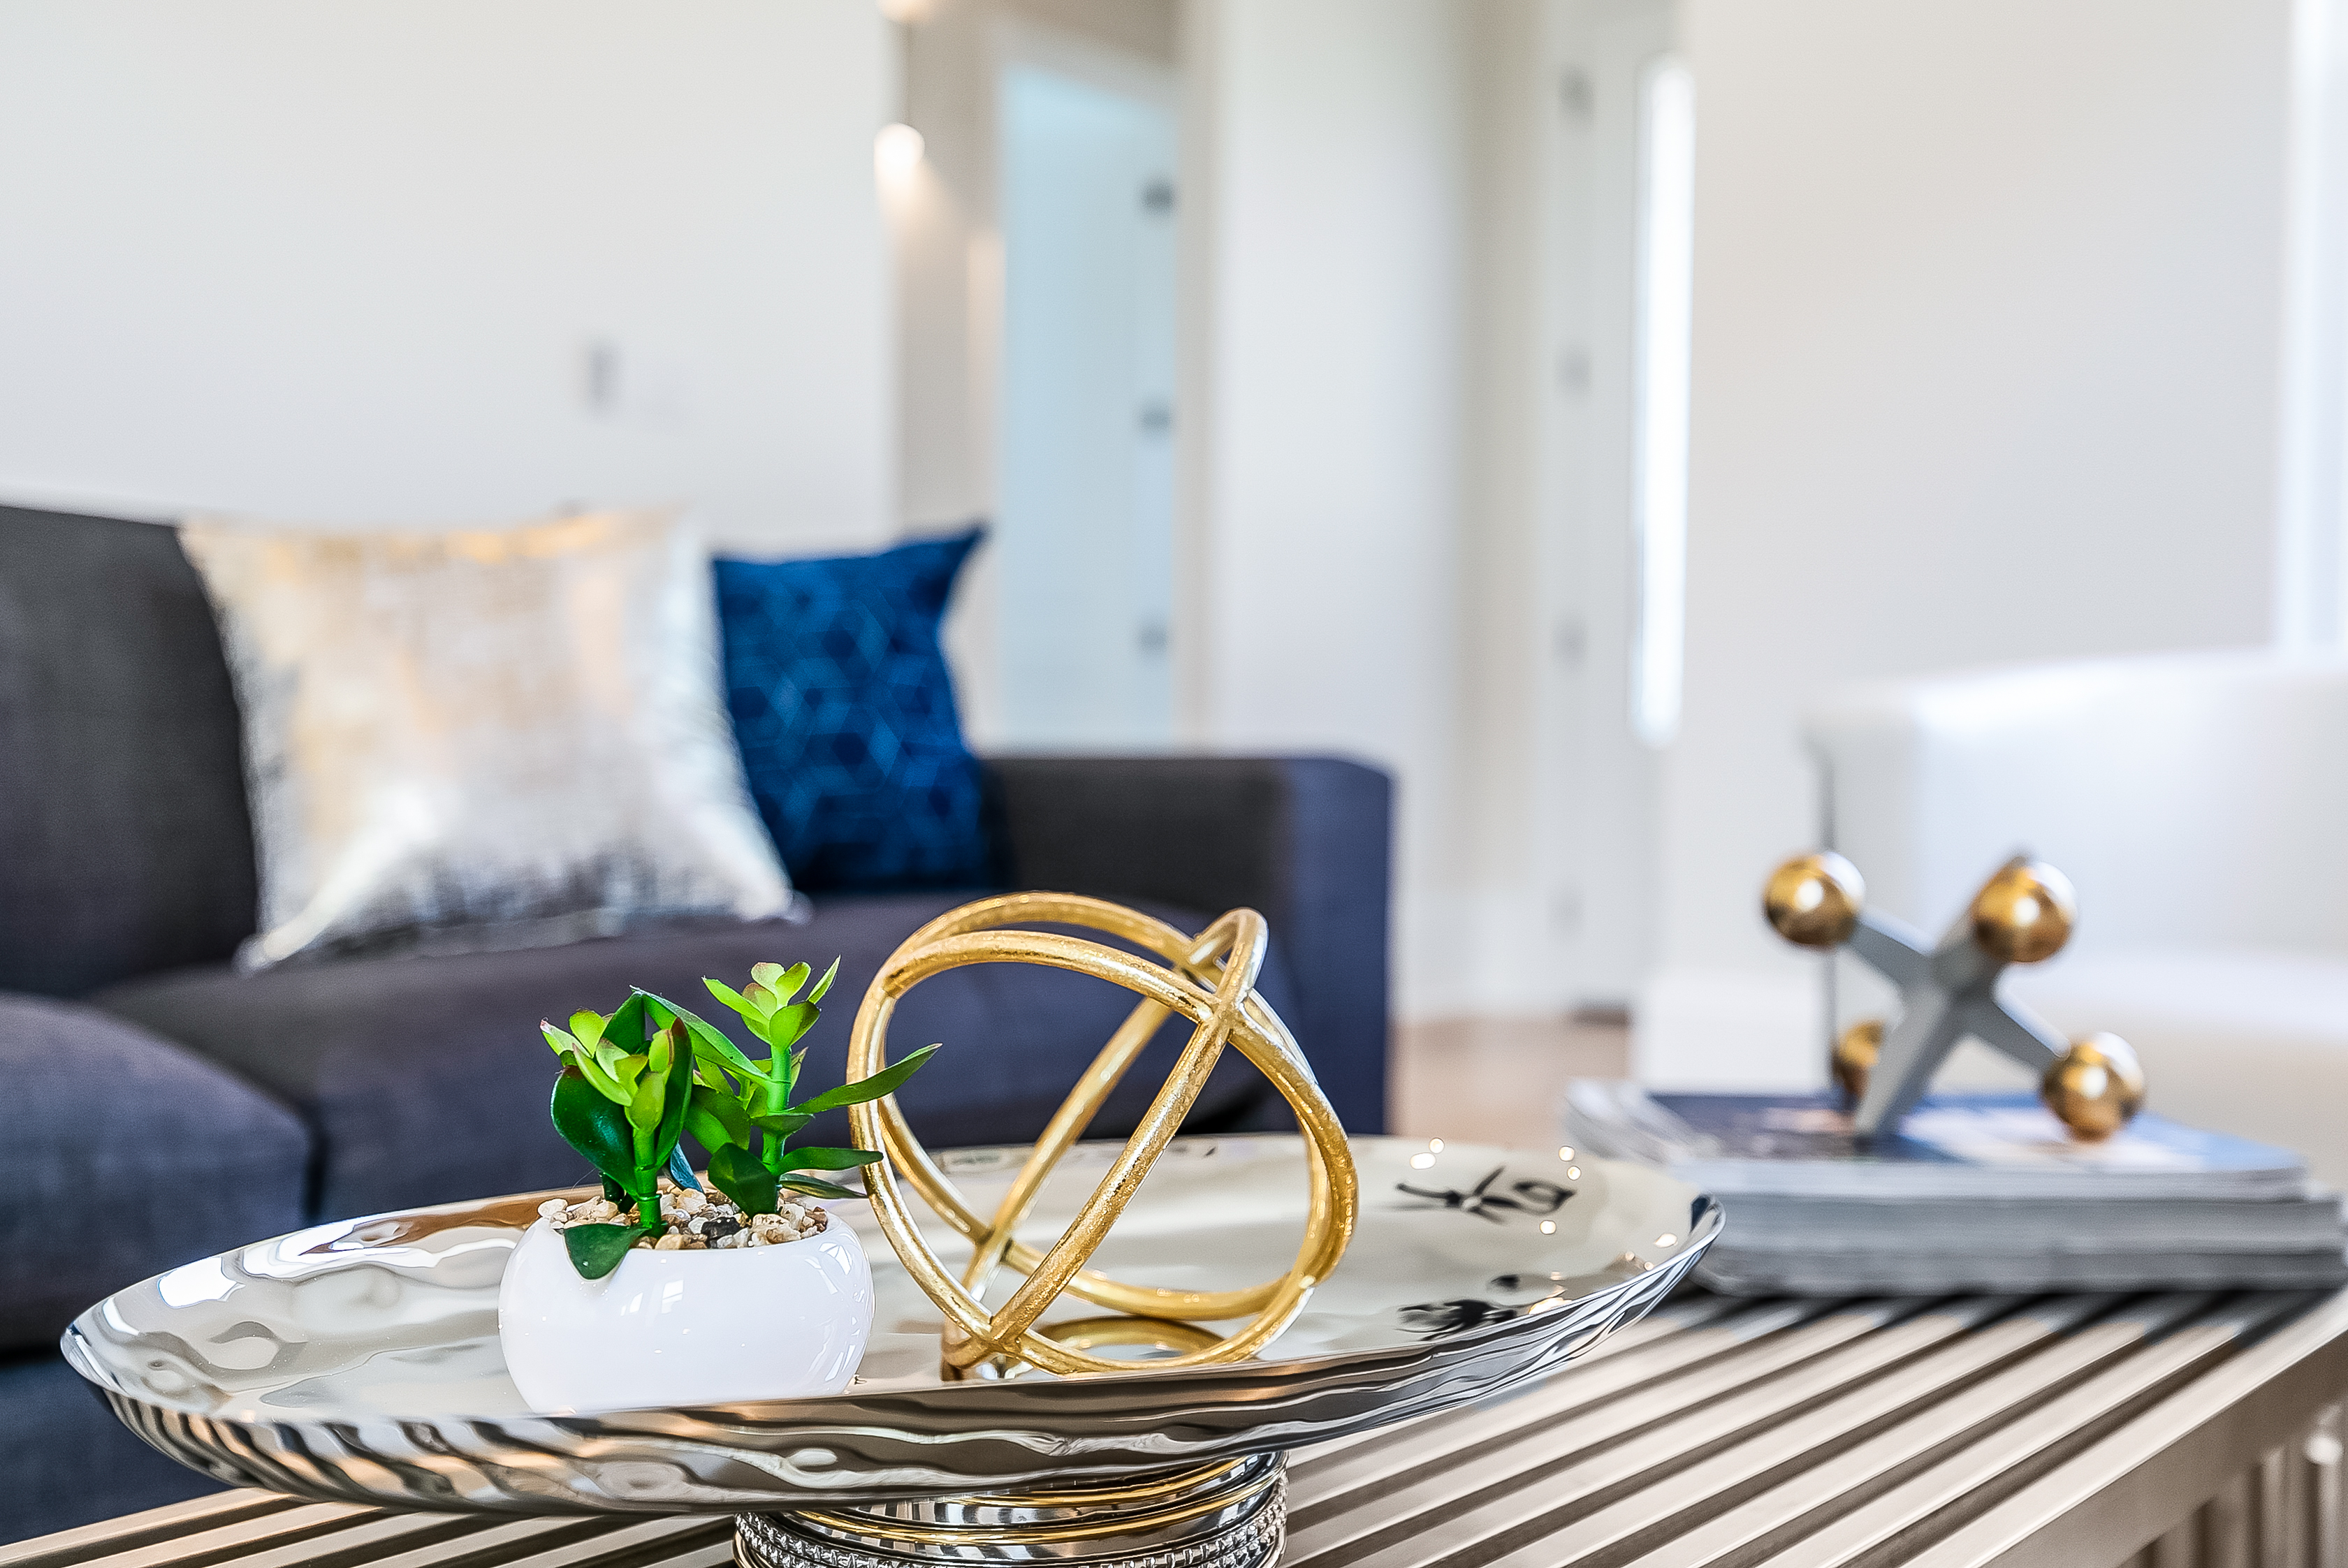 ... To Work Closely With Clients Our Interiors Are Tailored To Deliver A  Personal Design Experience. We Believe In The Proven Success Of Home Staging .